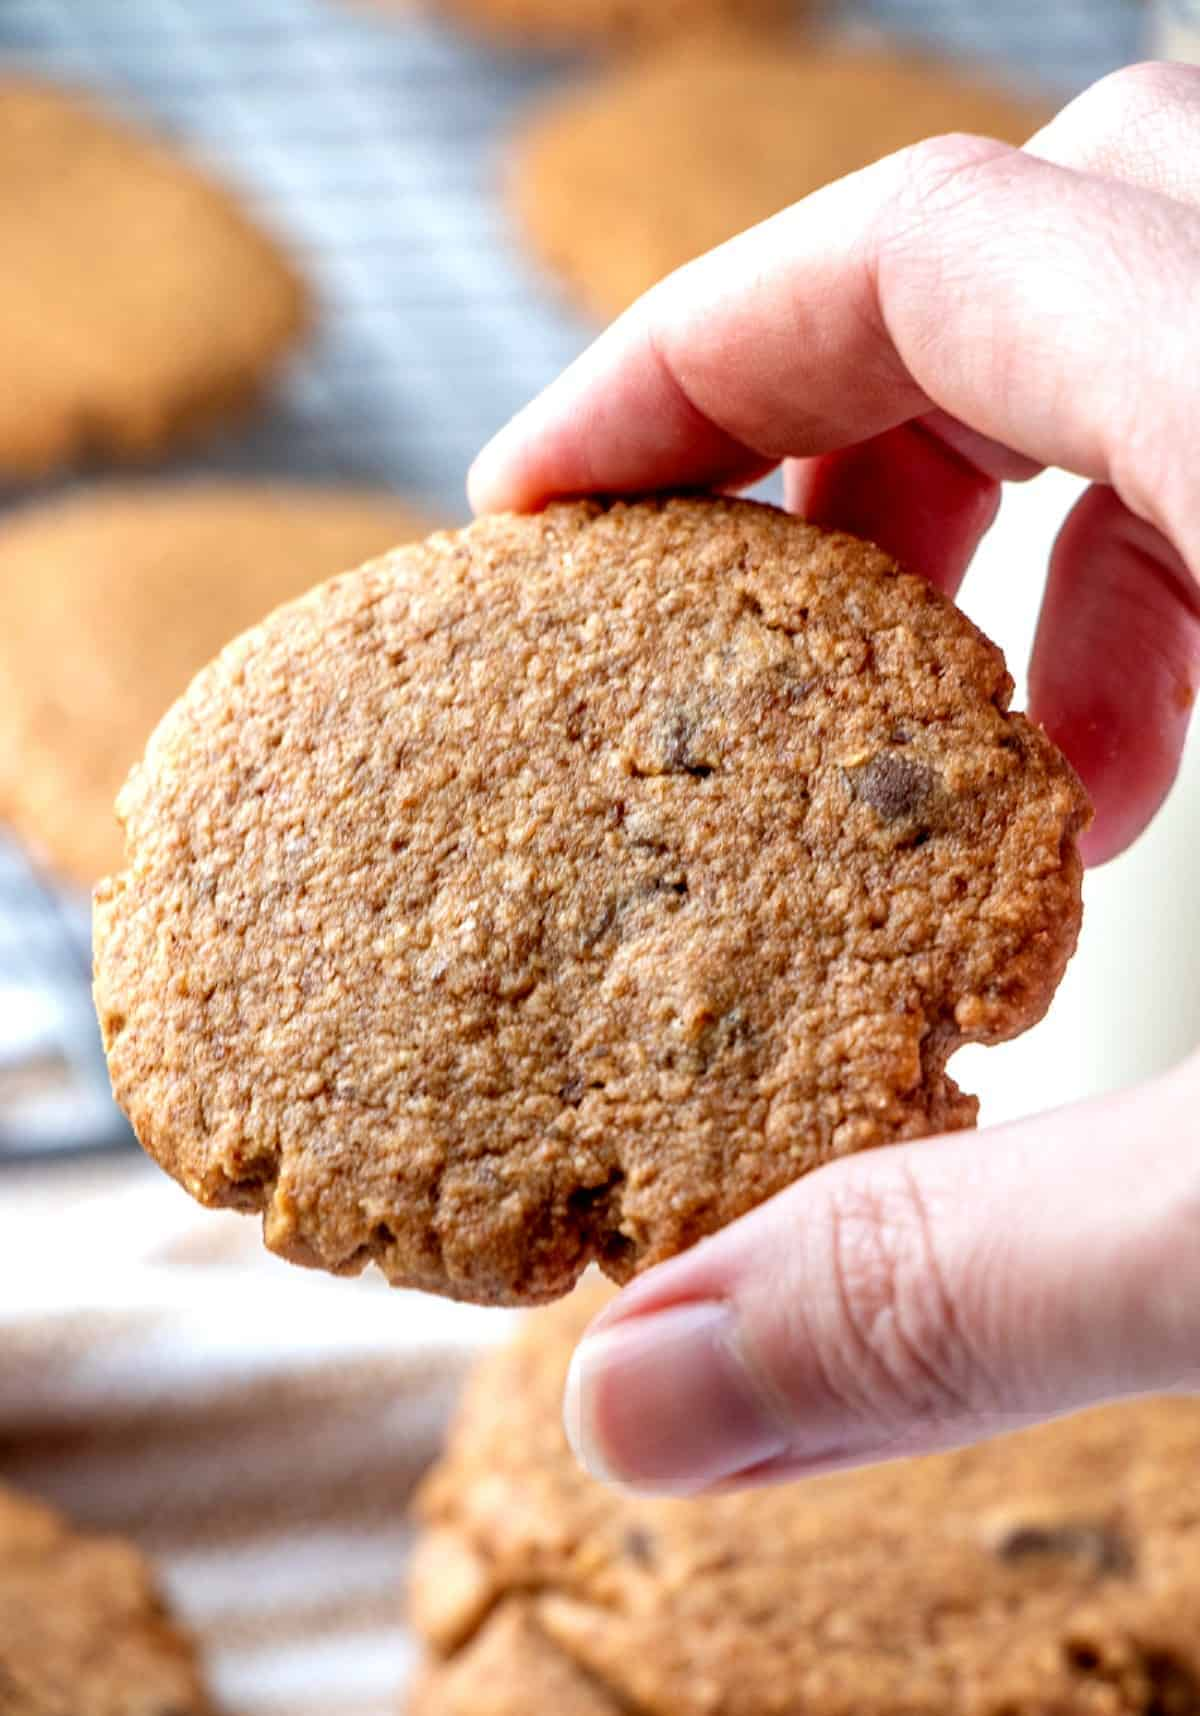 A hand holding up a single cookie.